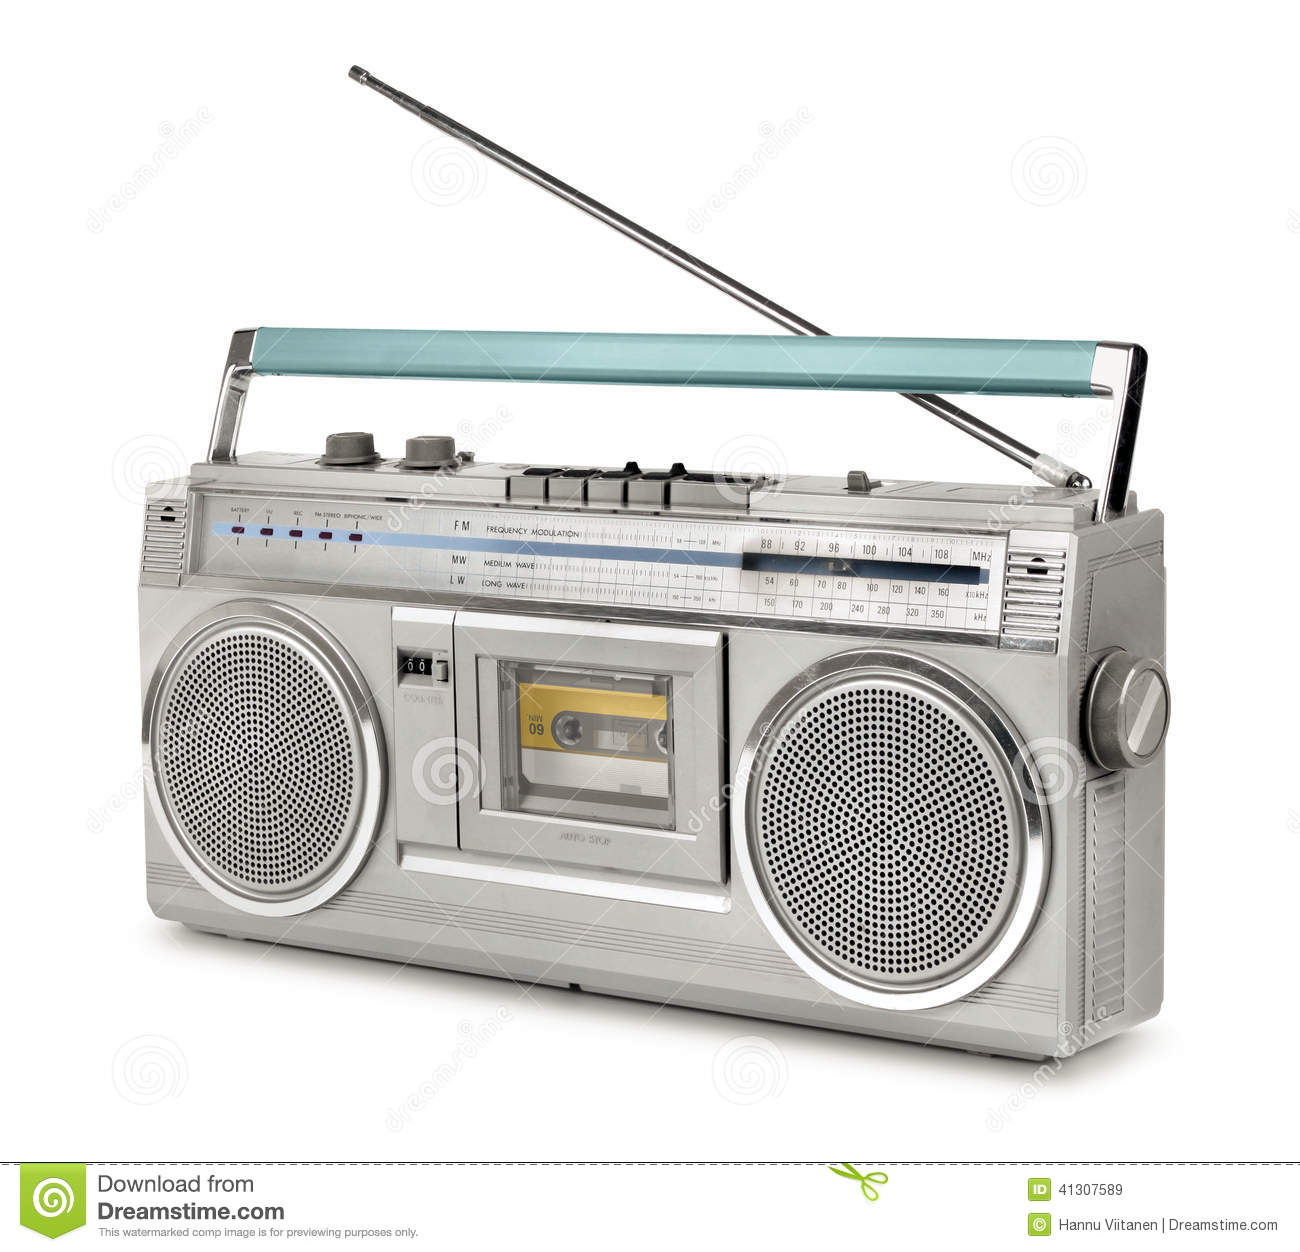 eighties vintage radio cassette player stock image image of isolated speaker 41307589. Black Bedroom Furniture Sets. Home Design Ideas